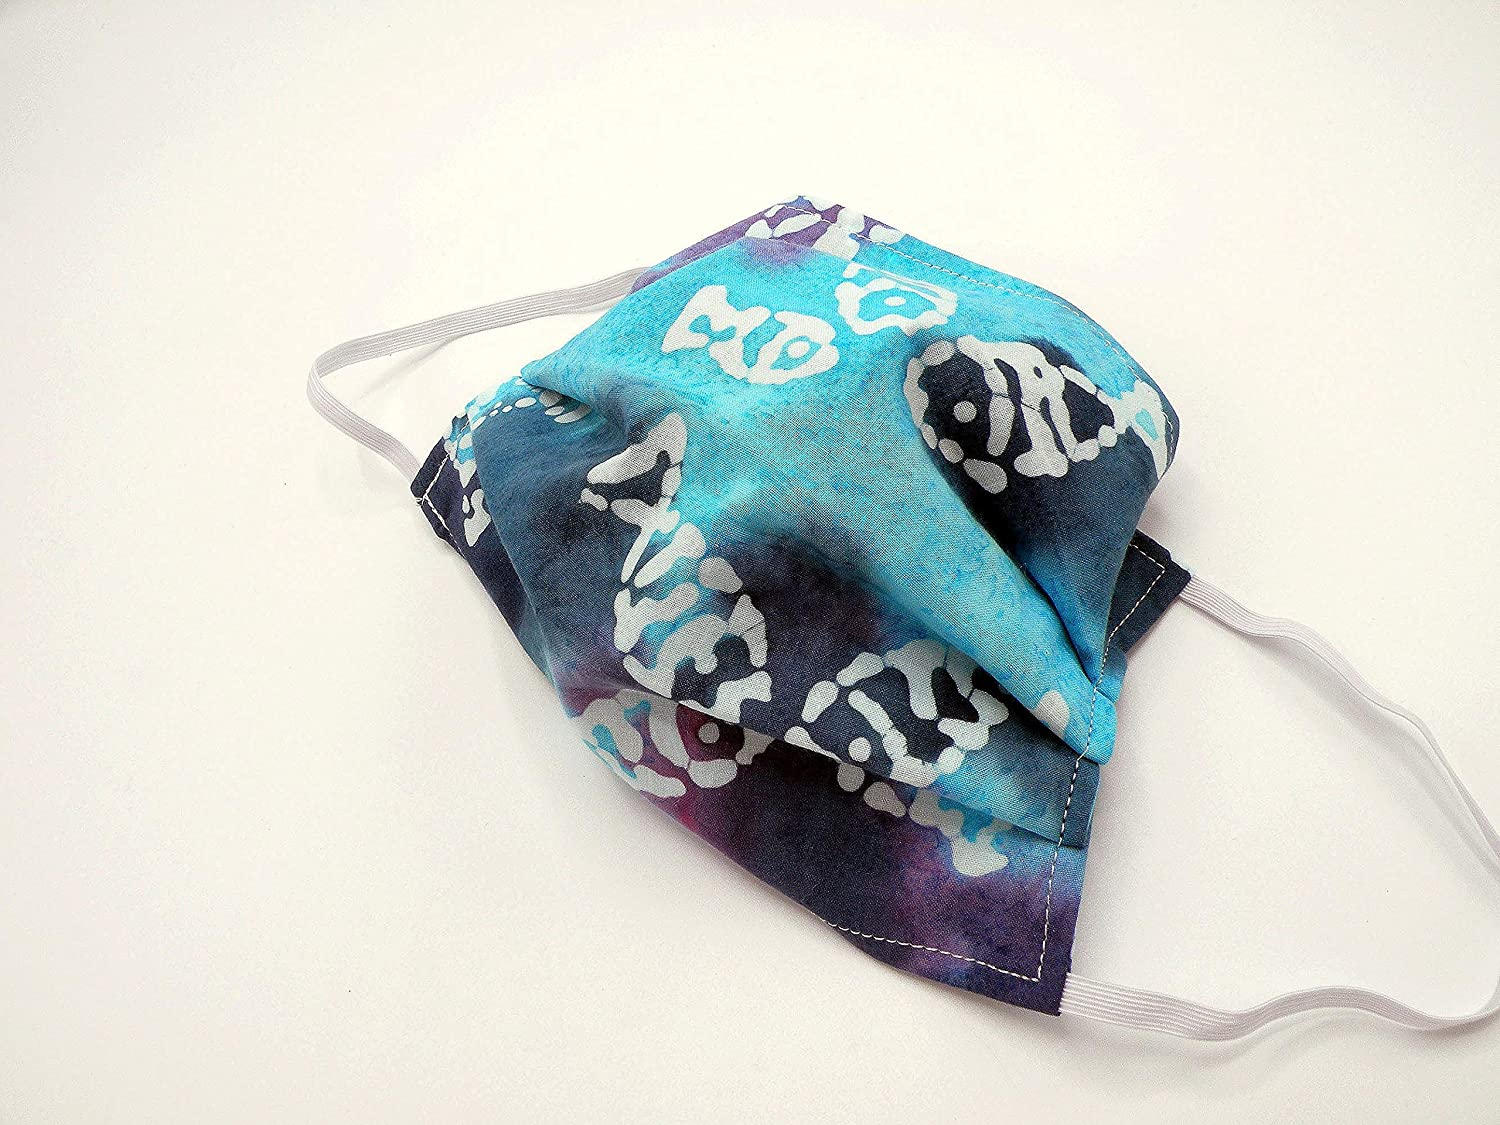 Batik Fish Cloth Max 40% OFF Face Mask Washable Slit Op for Topics on TV Reusable and has